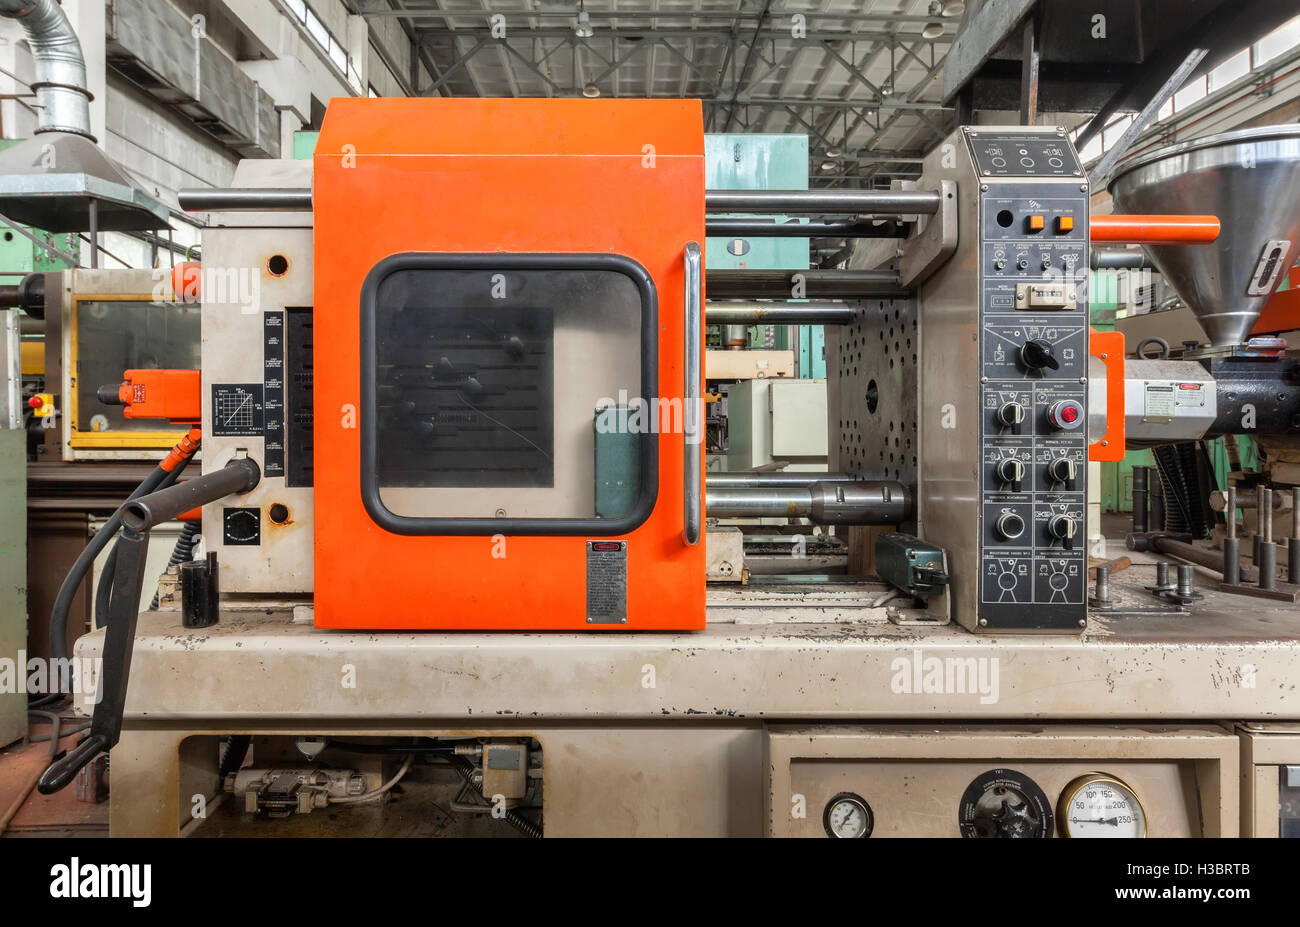 Injection molding thermoplastic machine close up - Stock Image